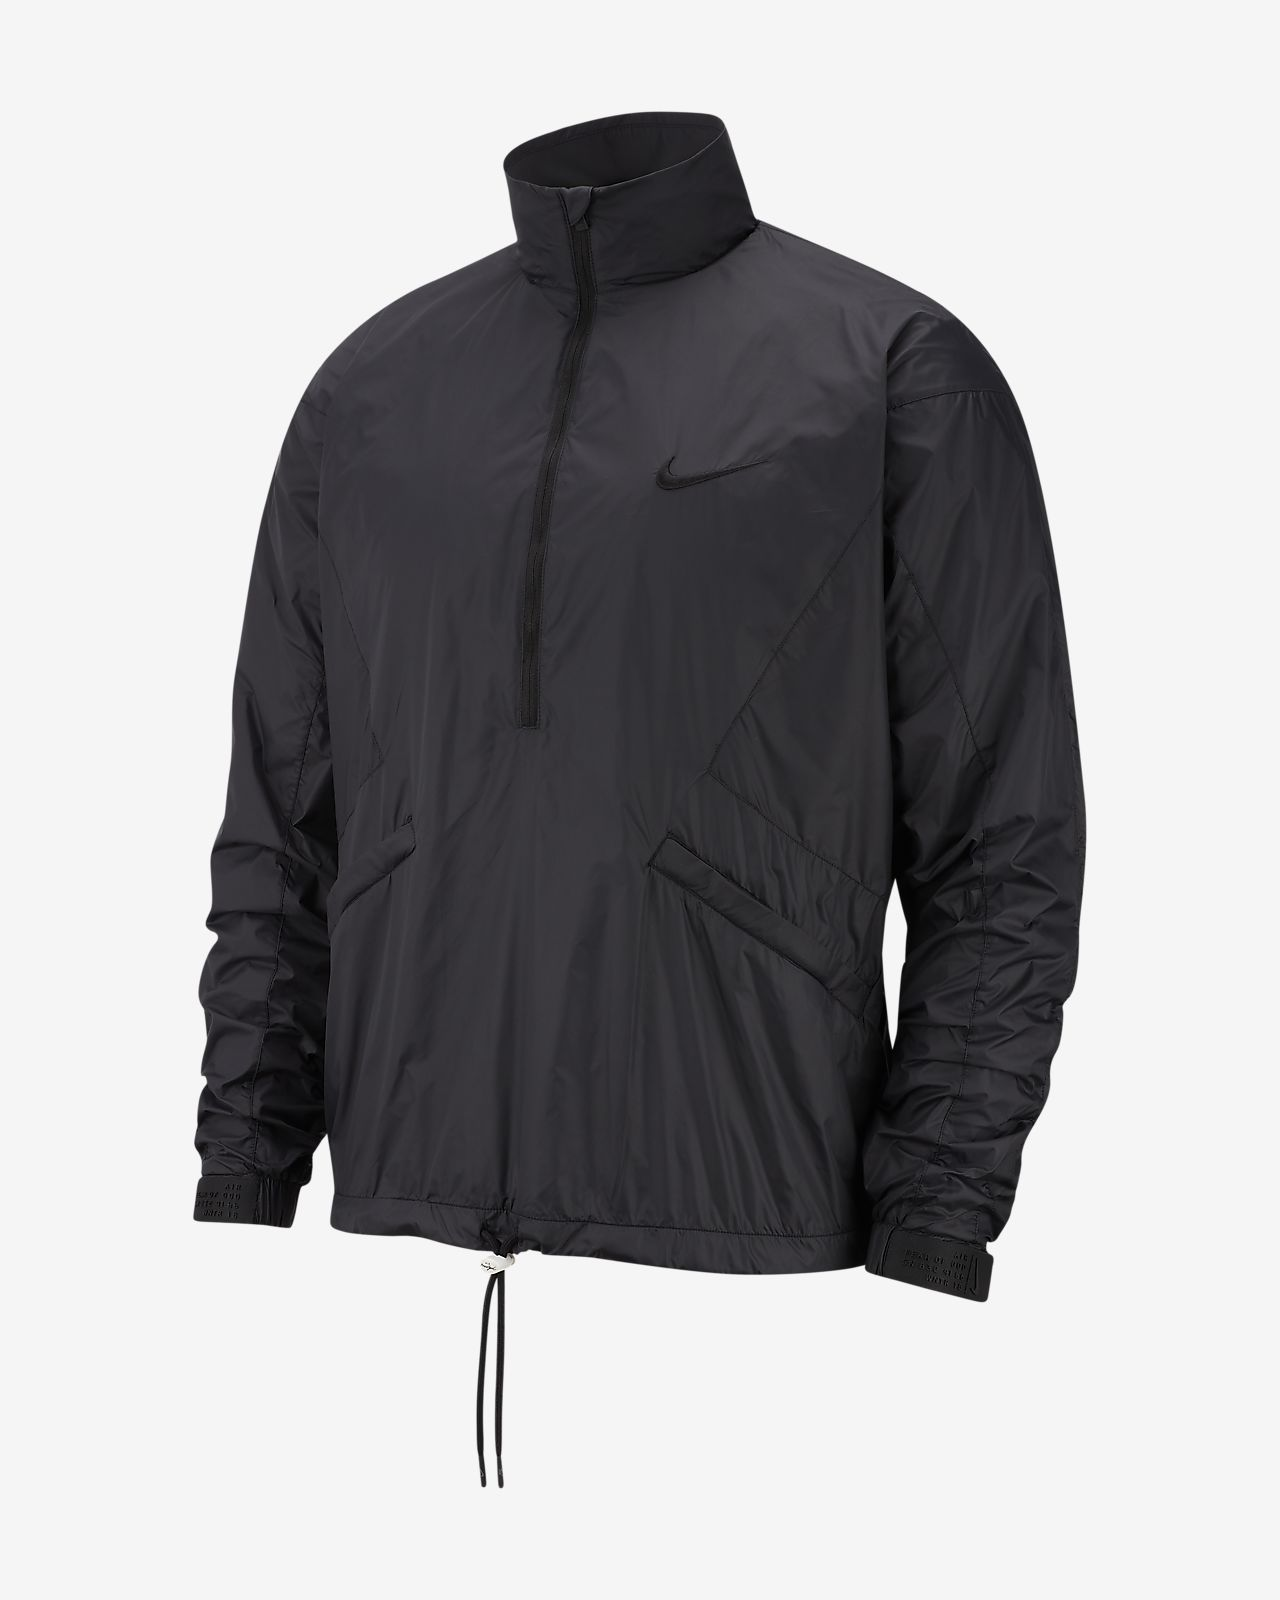 Veste à demi-zip Nike x Fear of God pour Homme